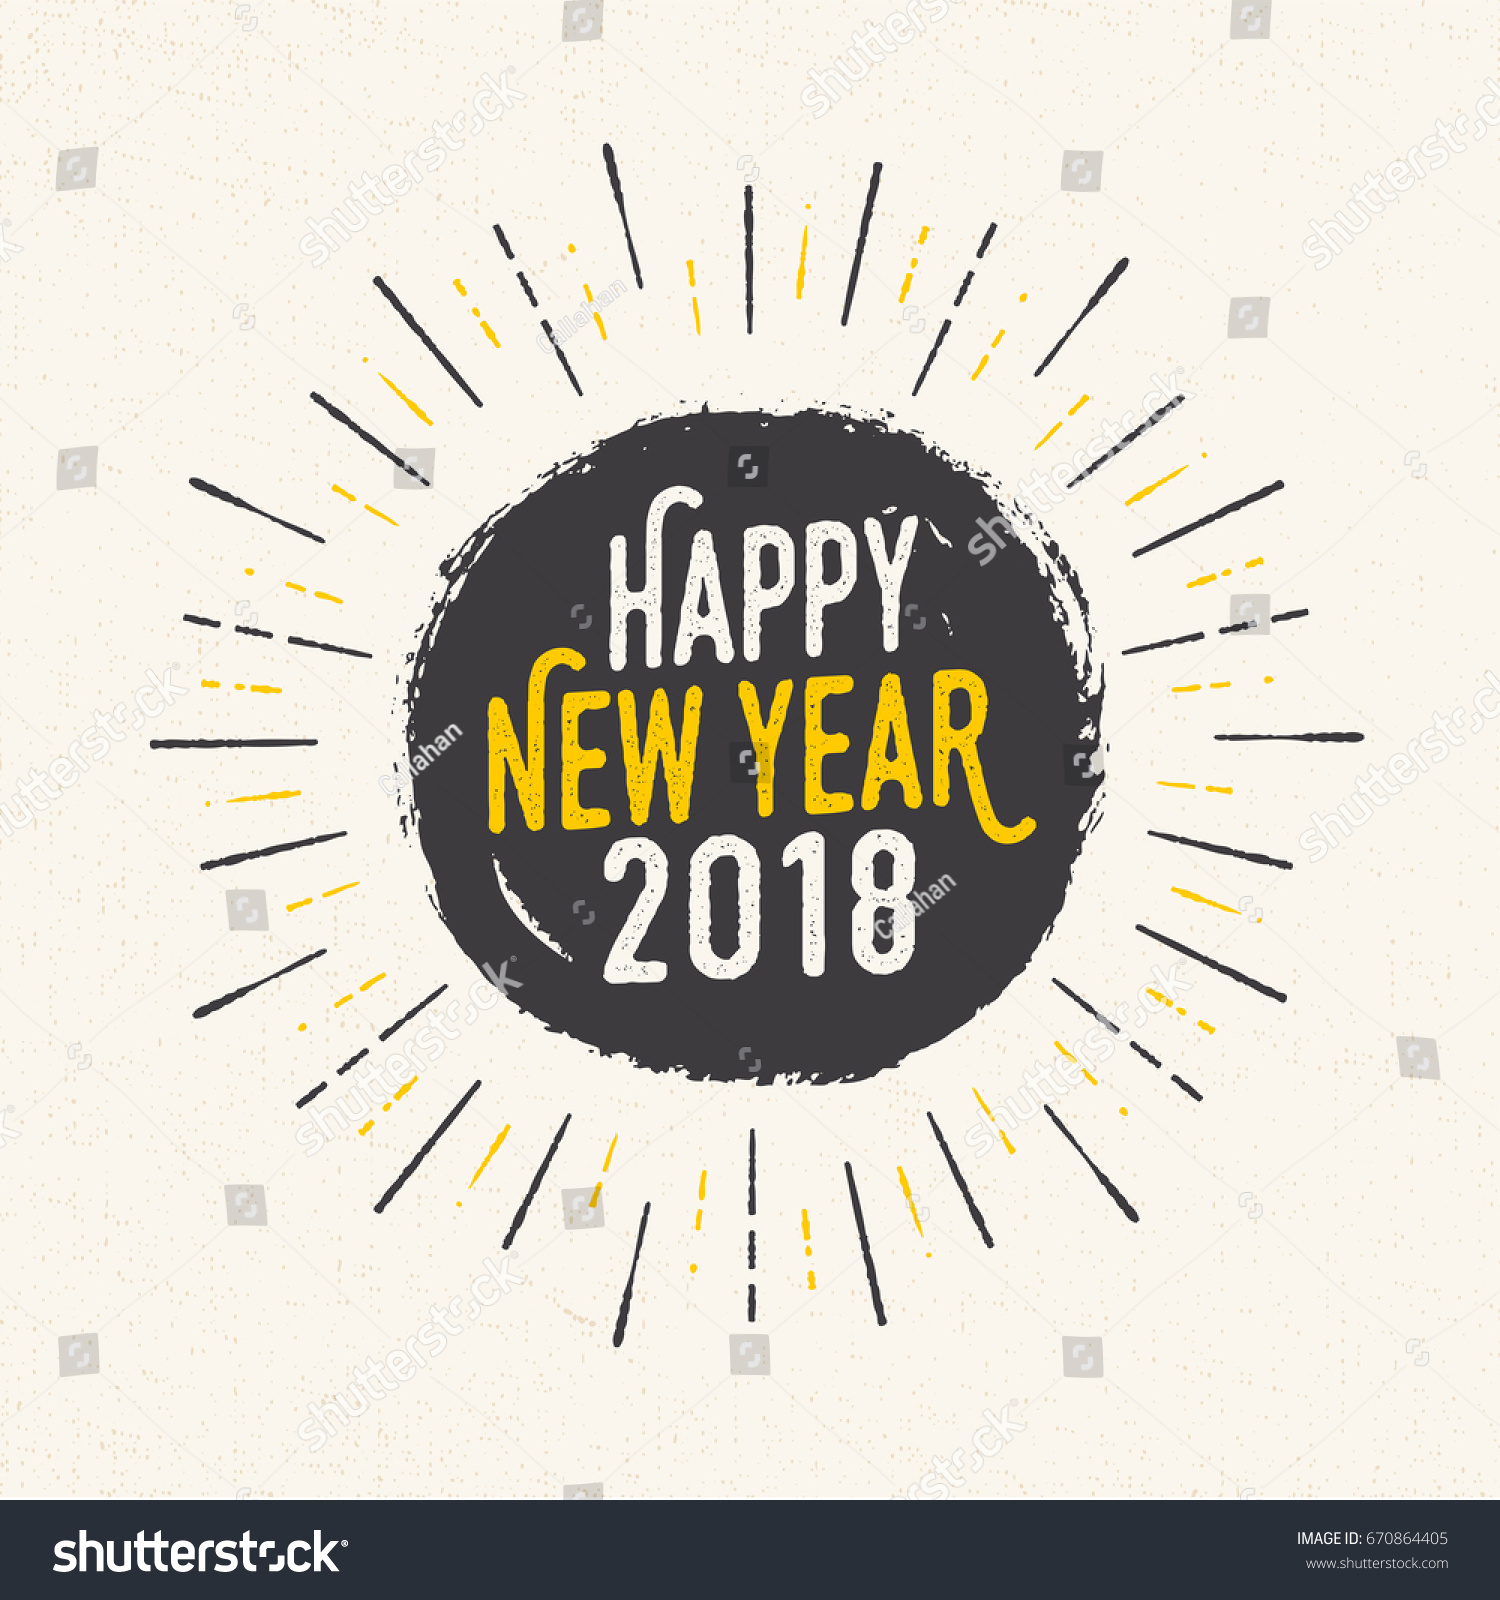 handmade style greeting card happy new year 2018 vector eps10